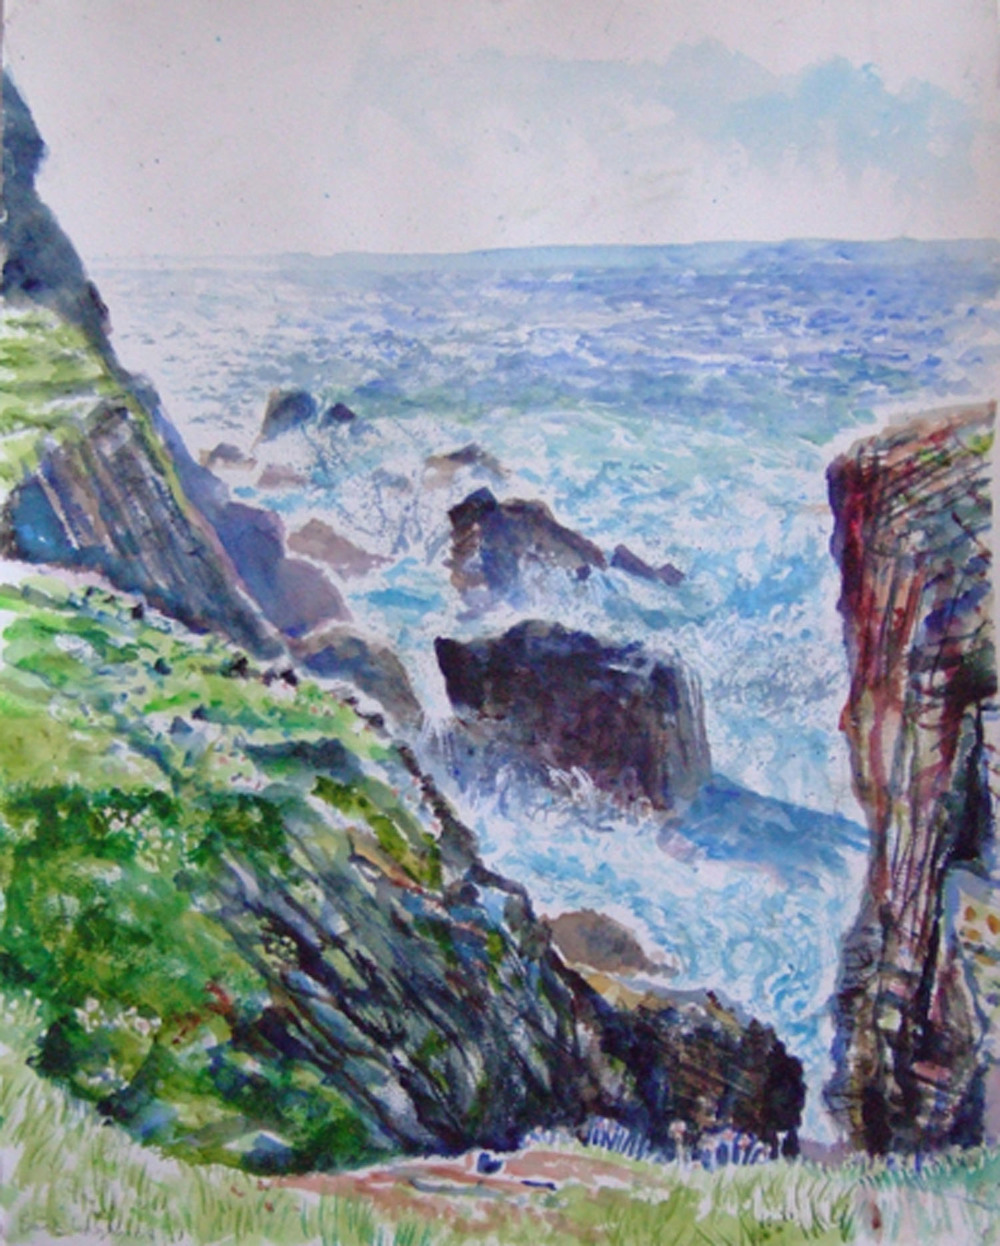 Sarah Longley_-_Duncansclate Cliffs_watercolour_76 x 56cm.jpg